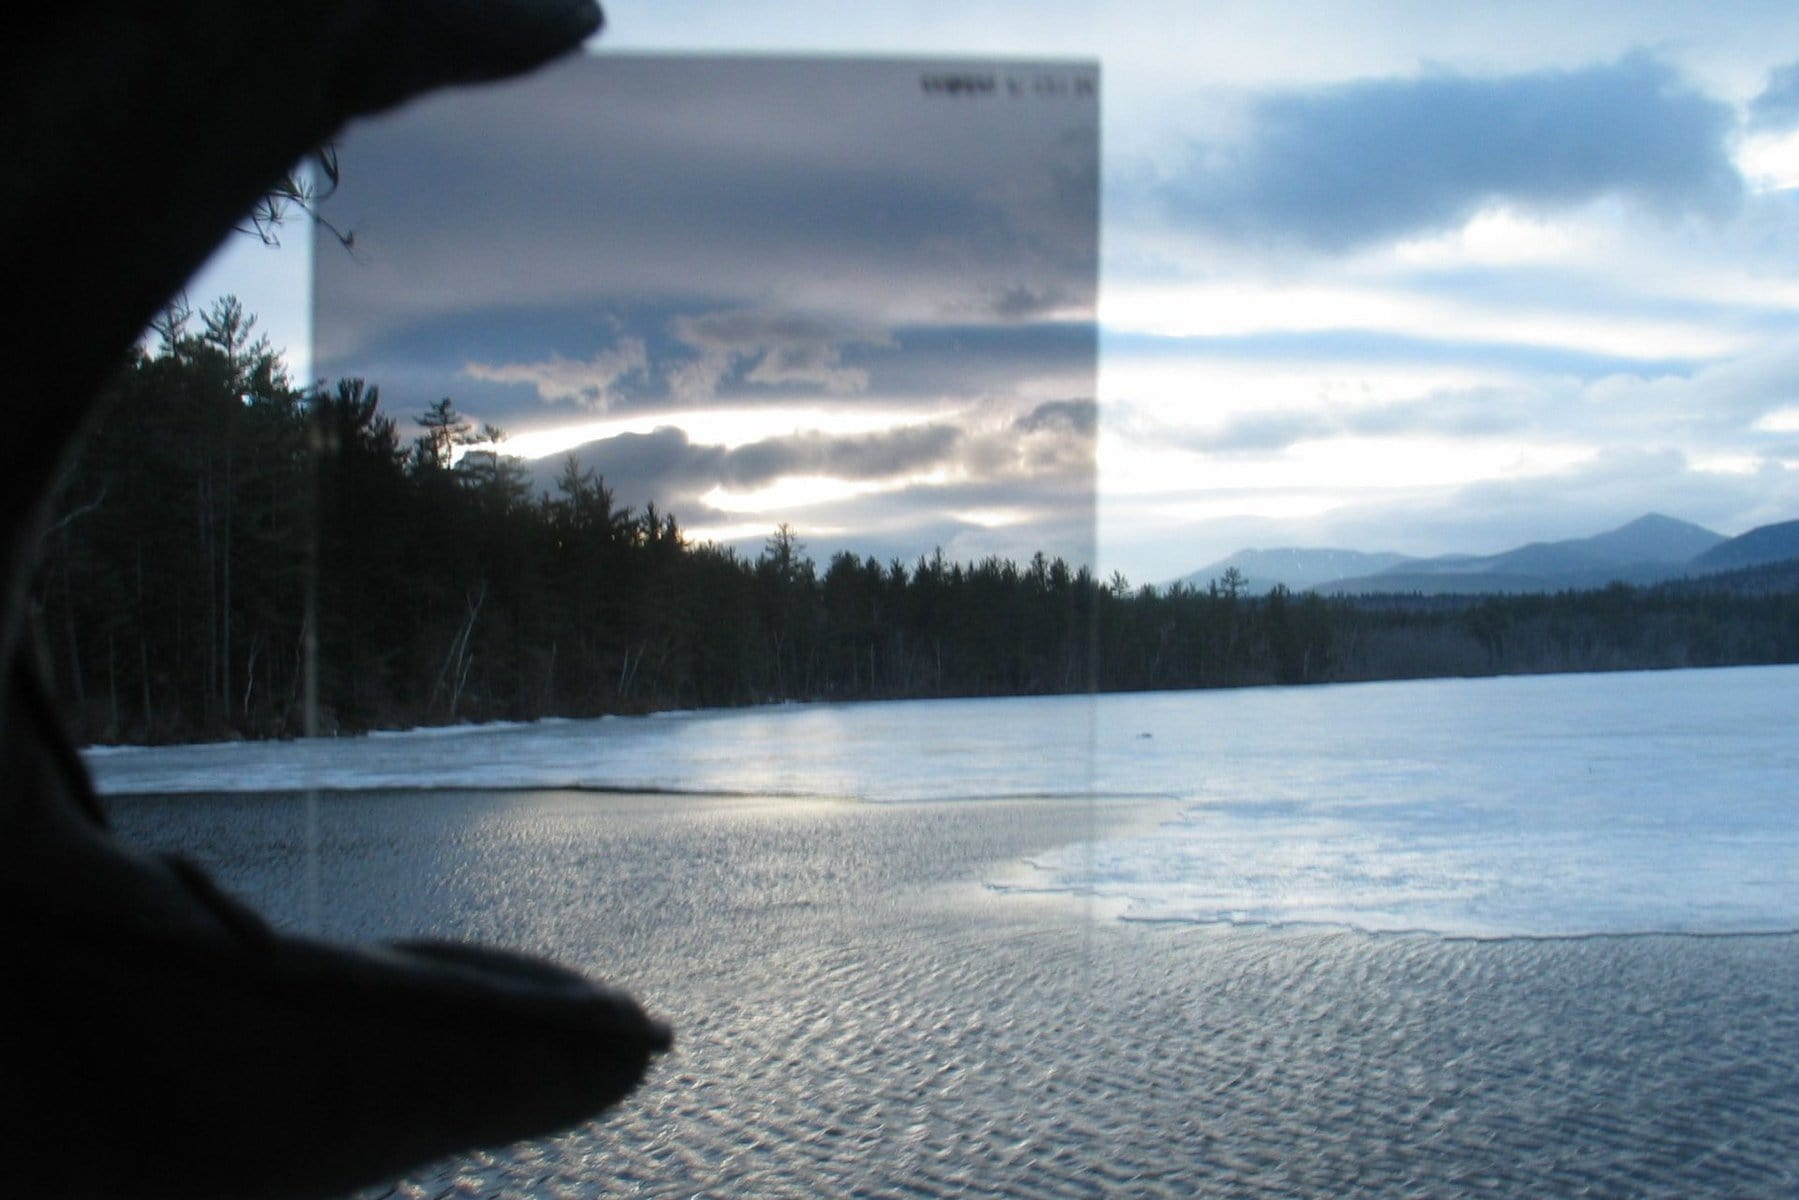 New ND Filters for landscape photography